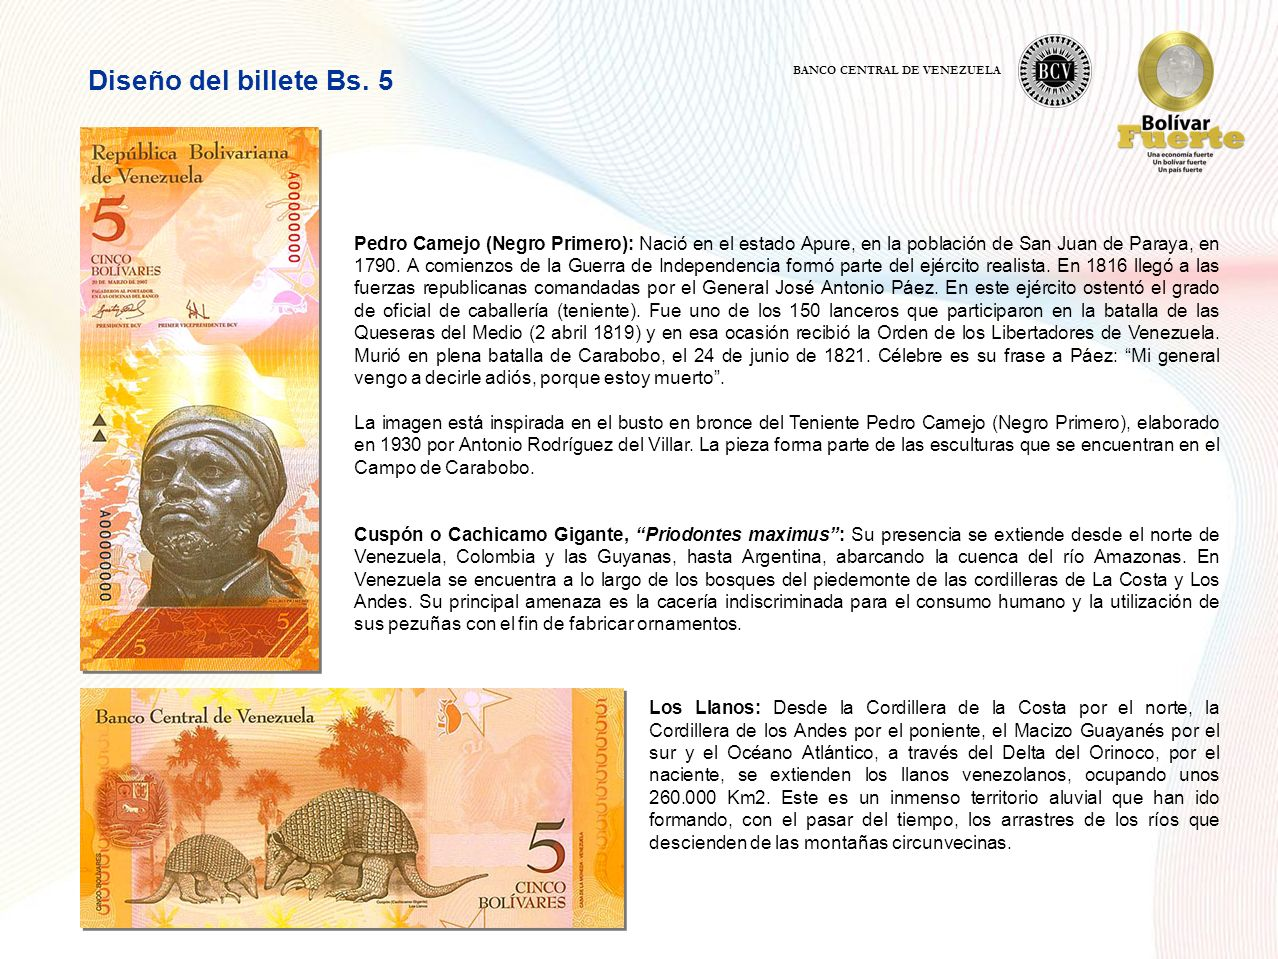 Diseño del billete Bs. 5 BANCO CENTRAL DE VENEZUELA.